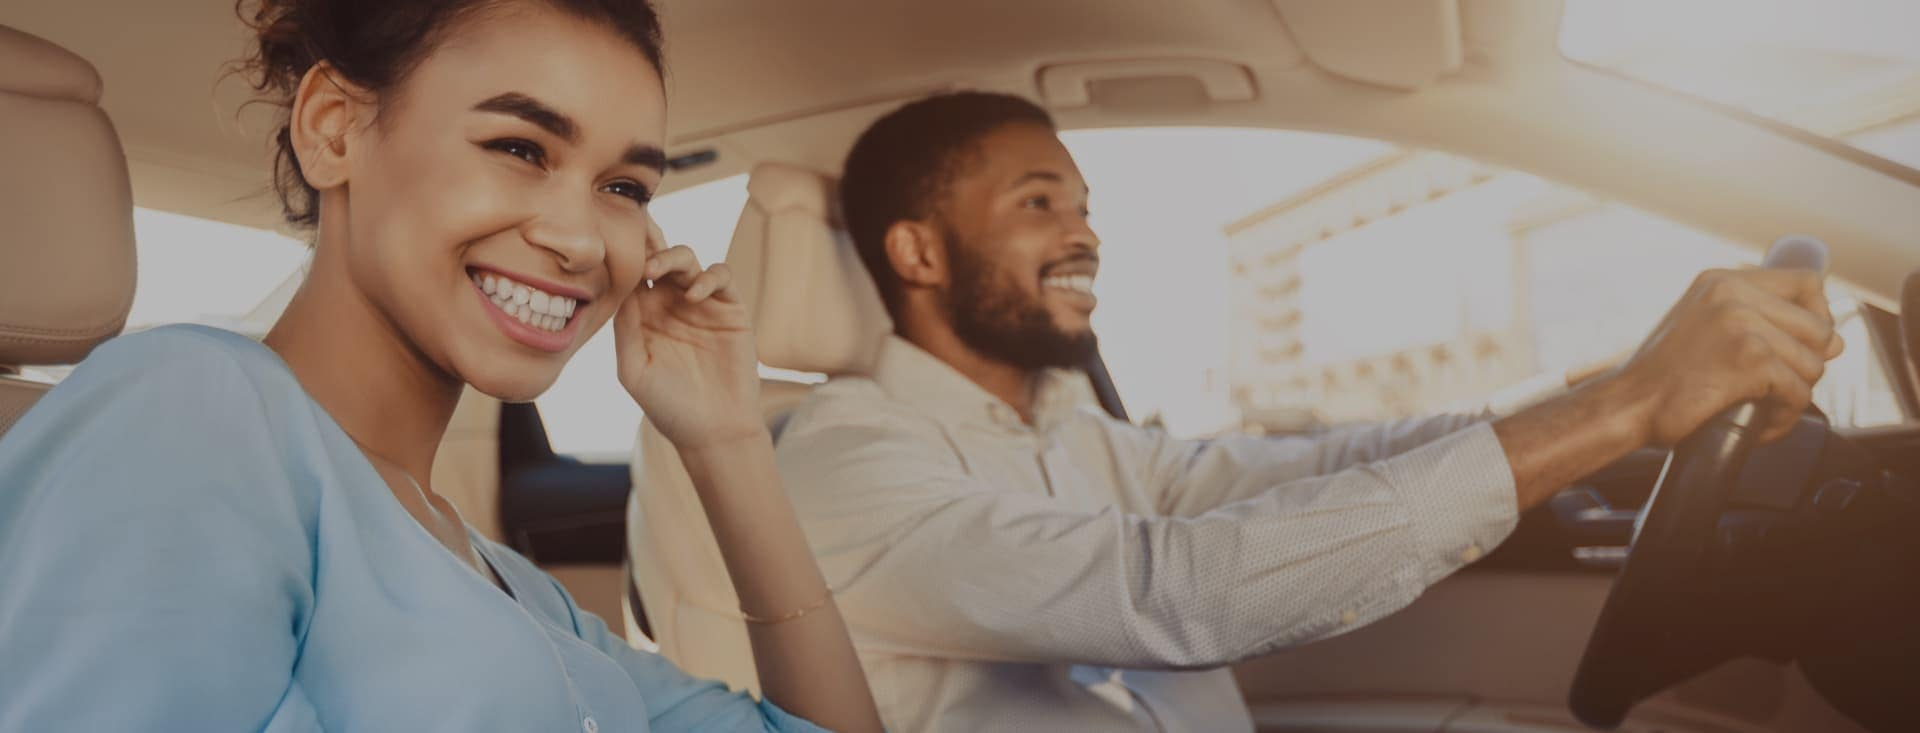 Man and woman happily driving a car